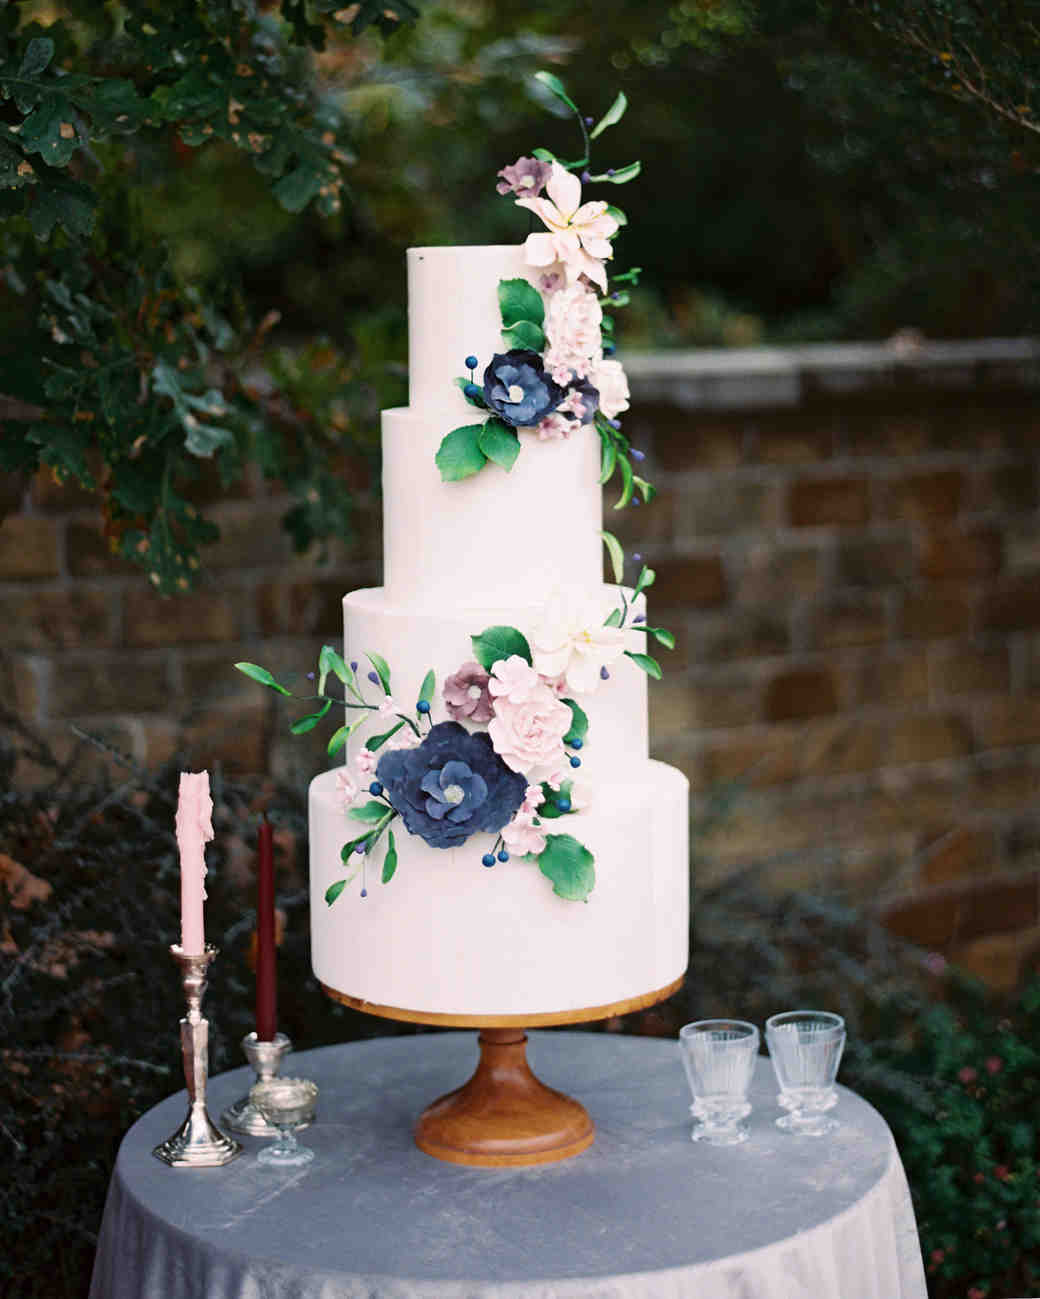 Pics Of Wedding Cakes: Fall Wedding Cakes